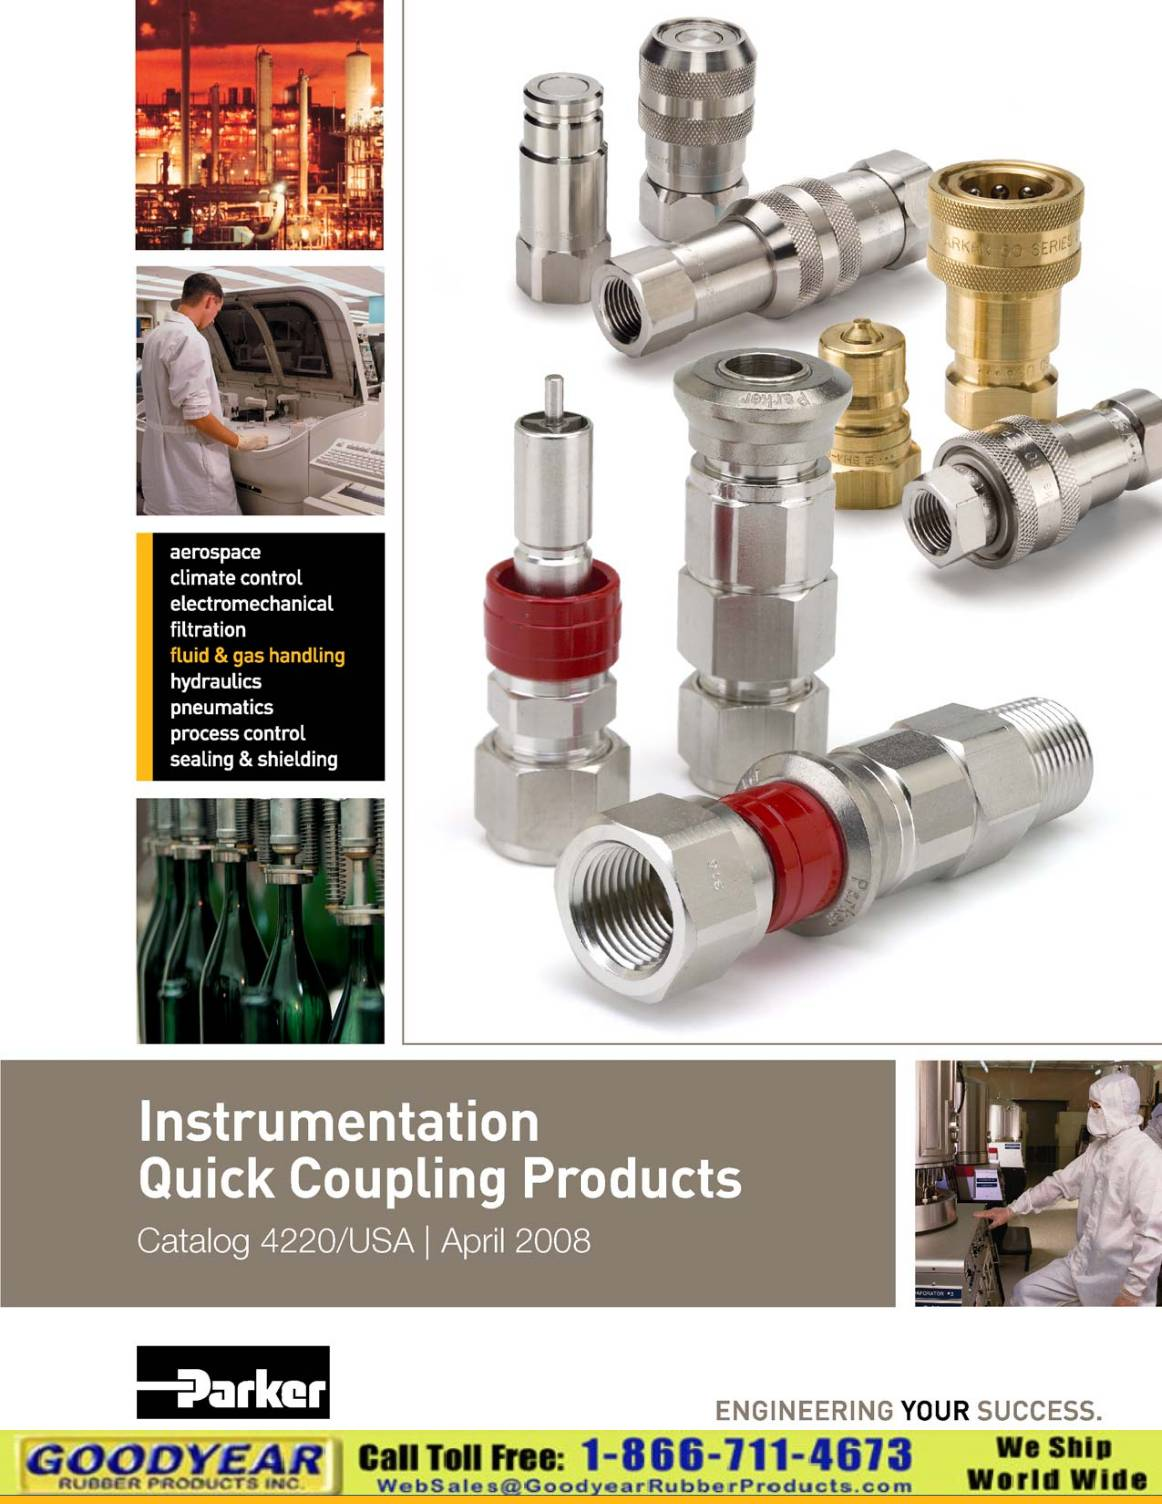 Parker Instrumentation Quick Couplings